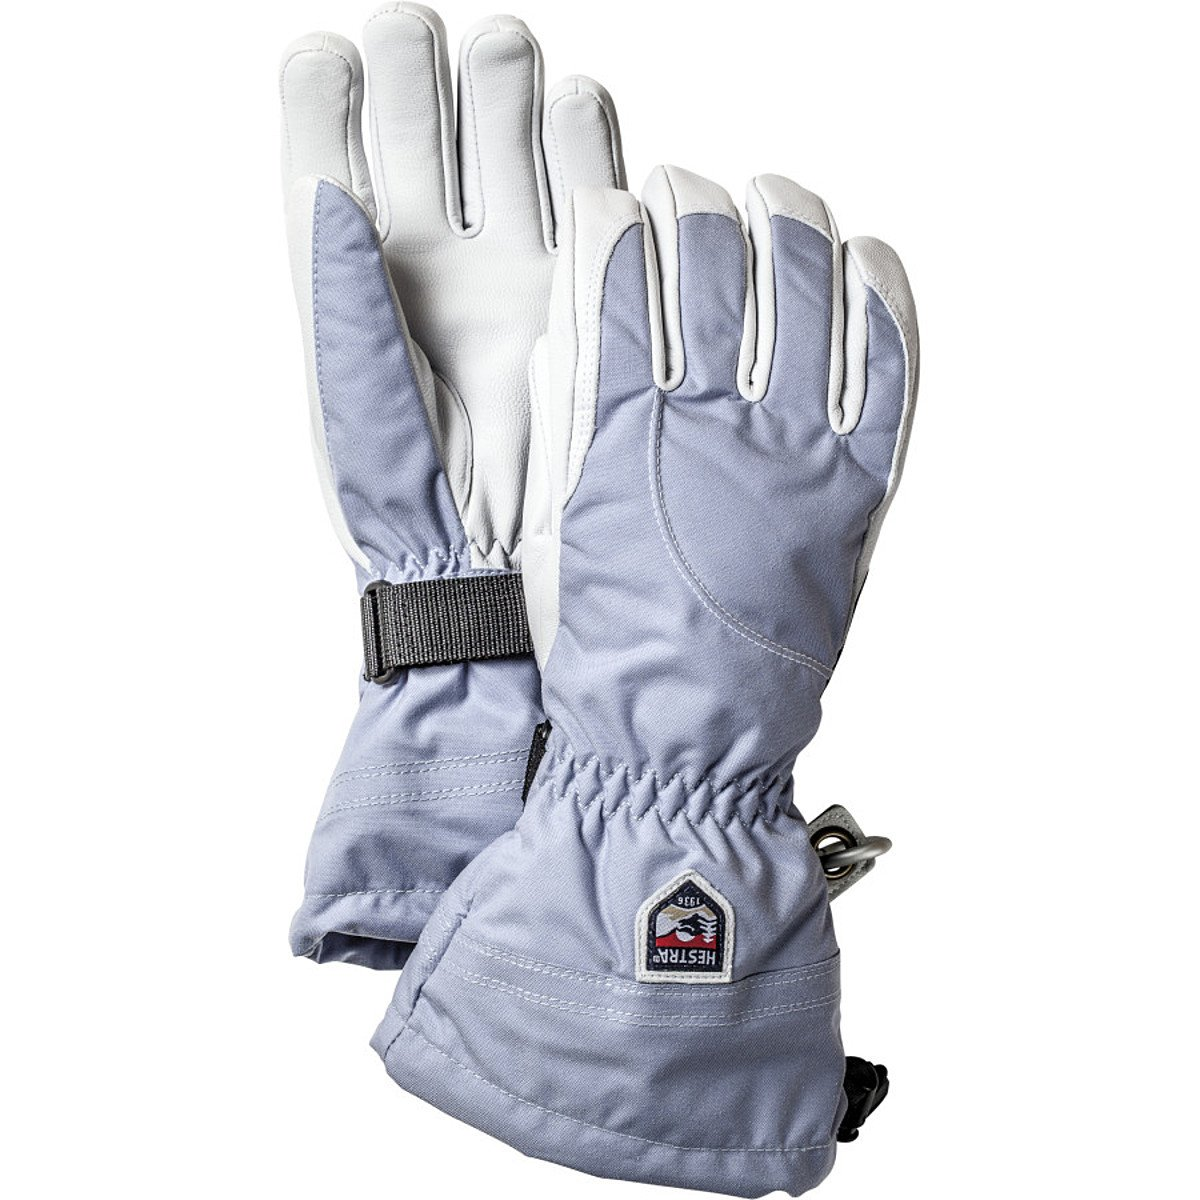 Hestra Heli Glove - Women's Ice Blue / Off White 6